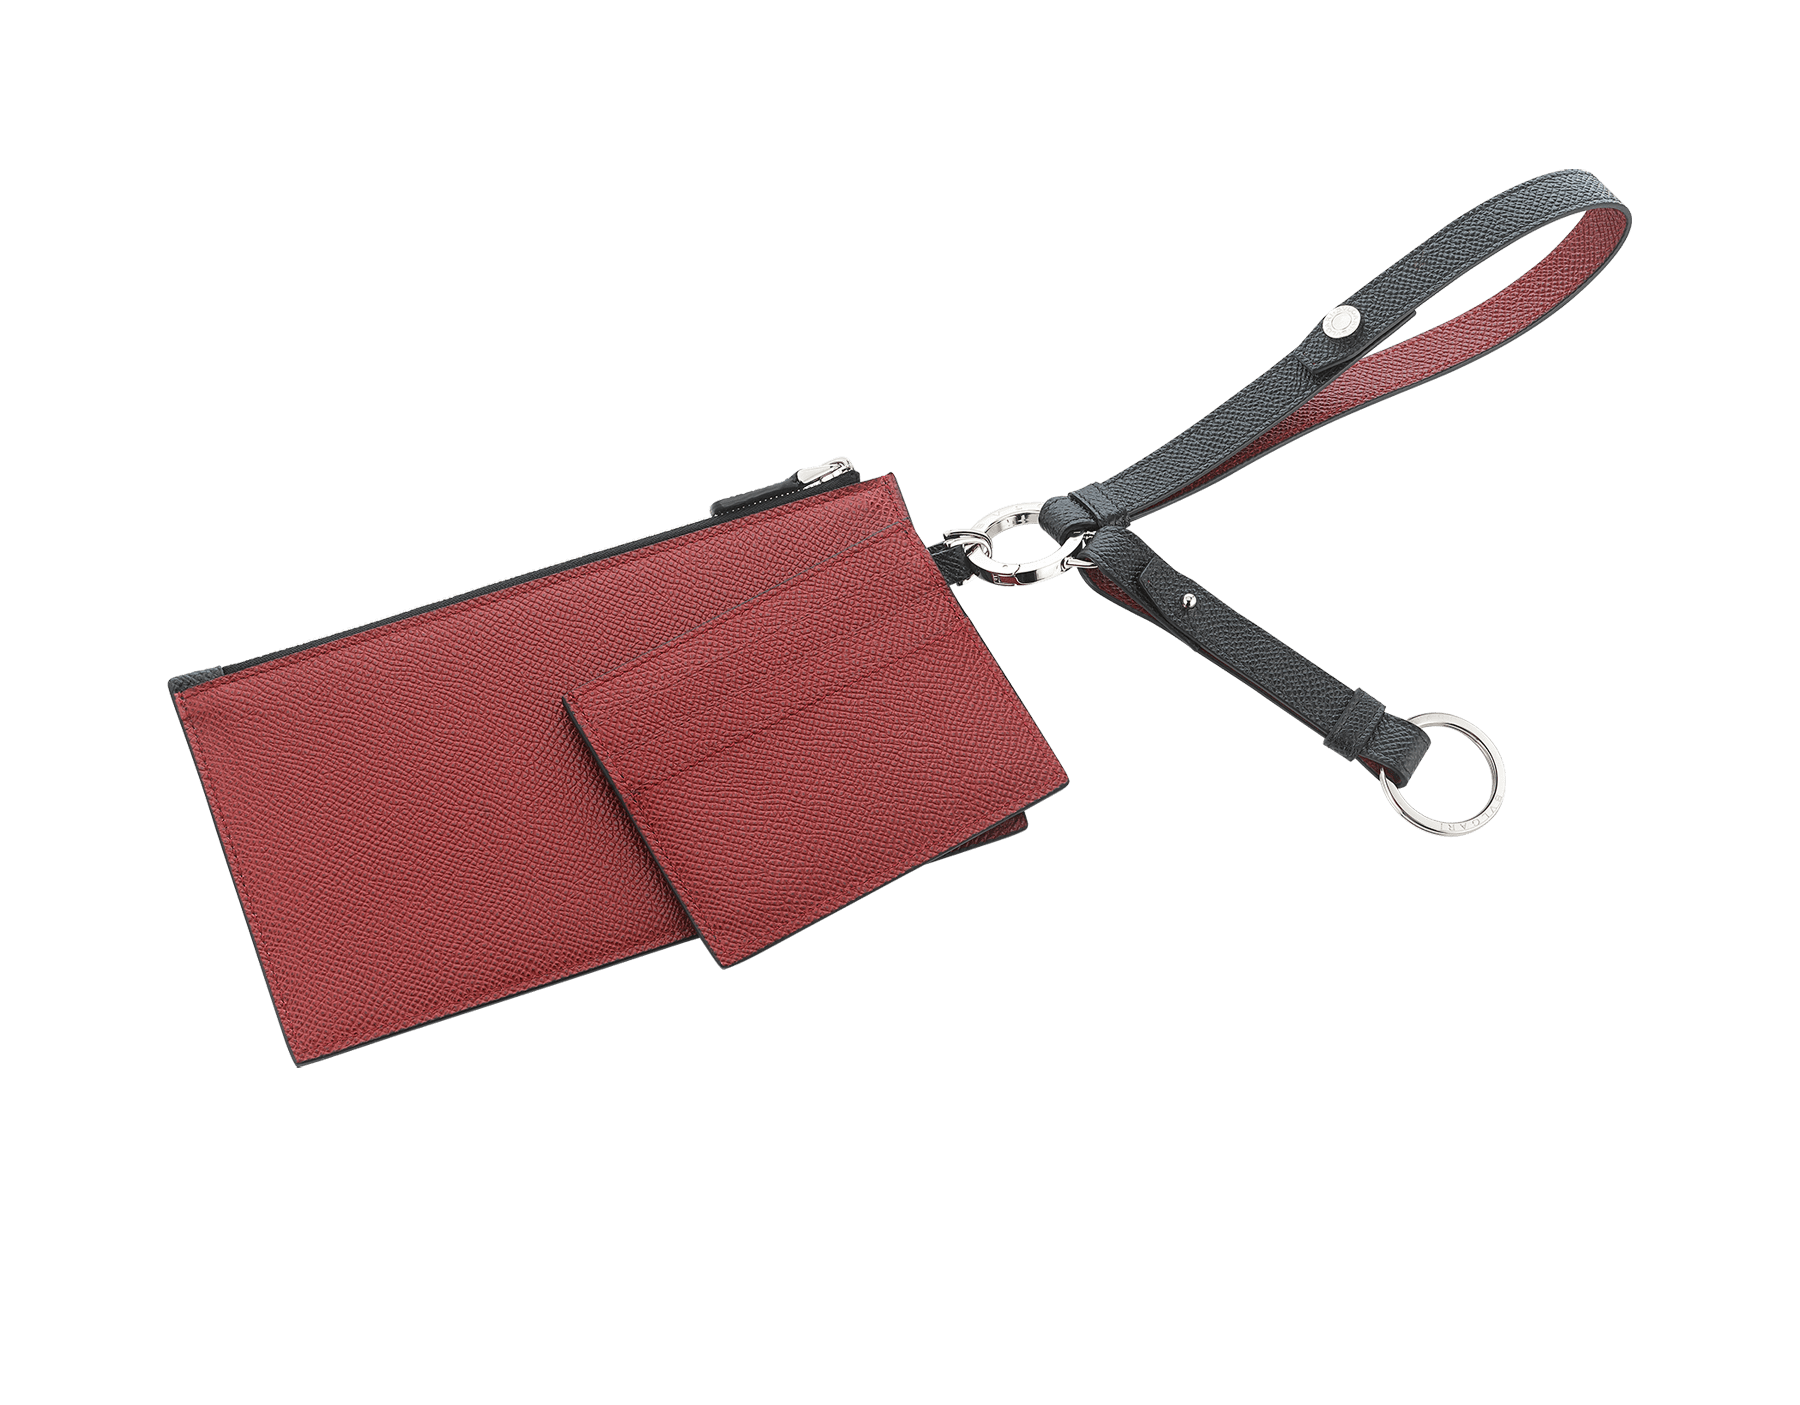 BVLGARI BVLGARI phone and credit card holder in black and ruby red calf leather. Brass palladium plated and black calf leather keyholder and black calf leather strap. 289388 image 2